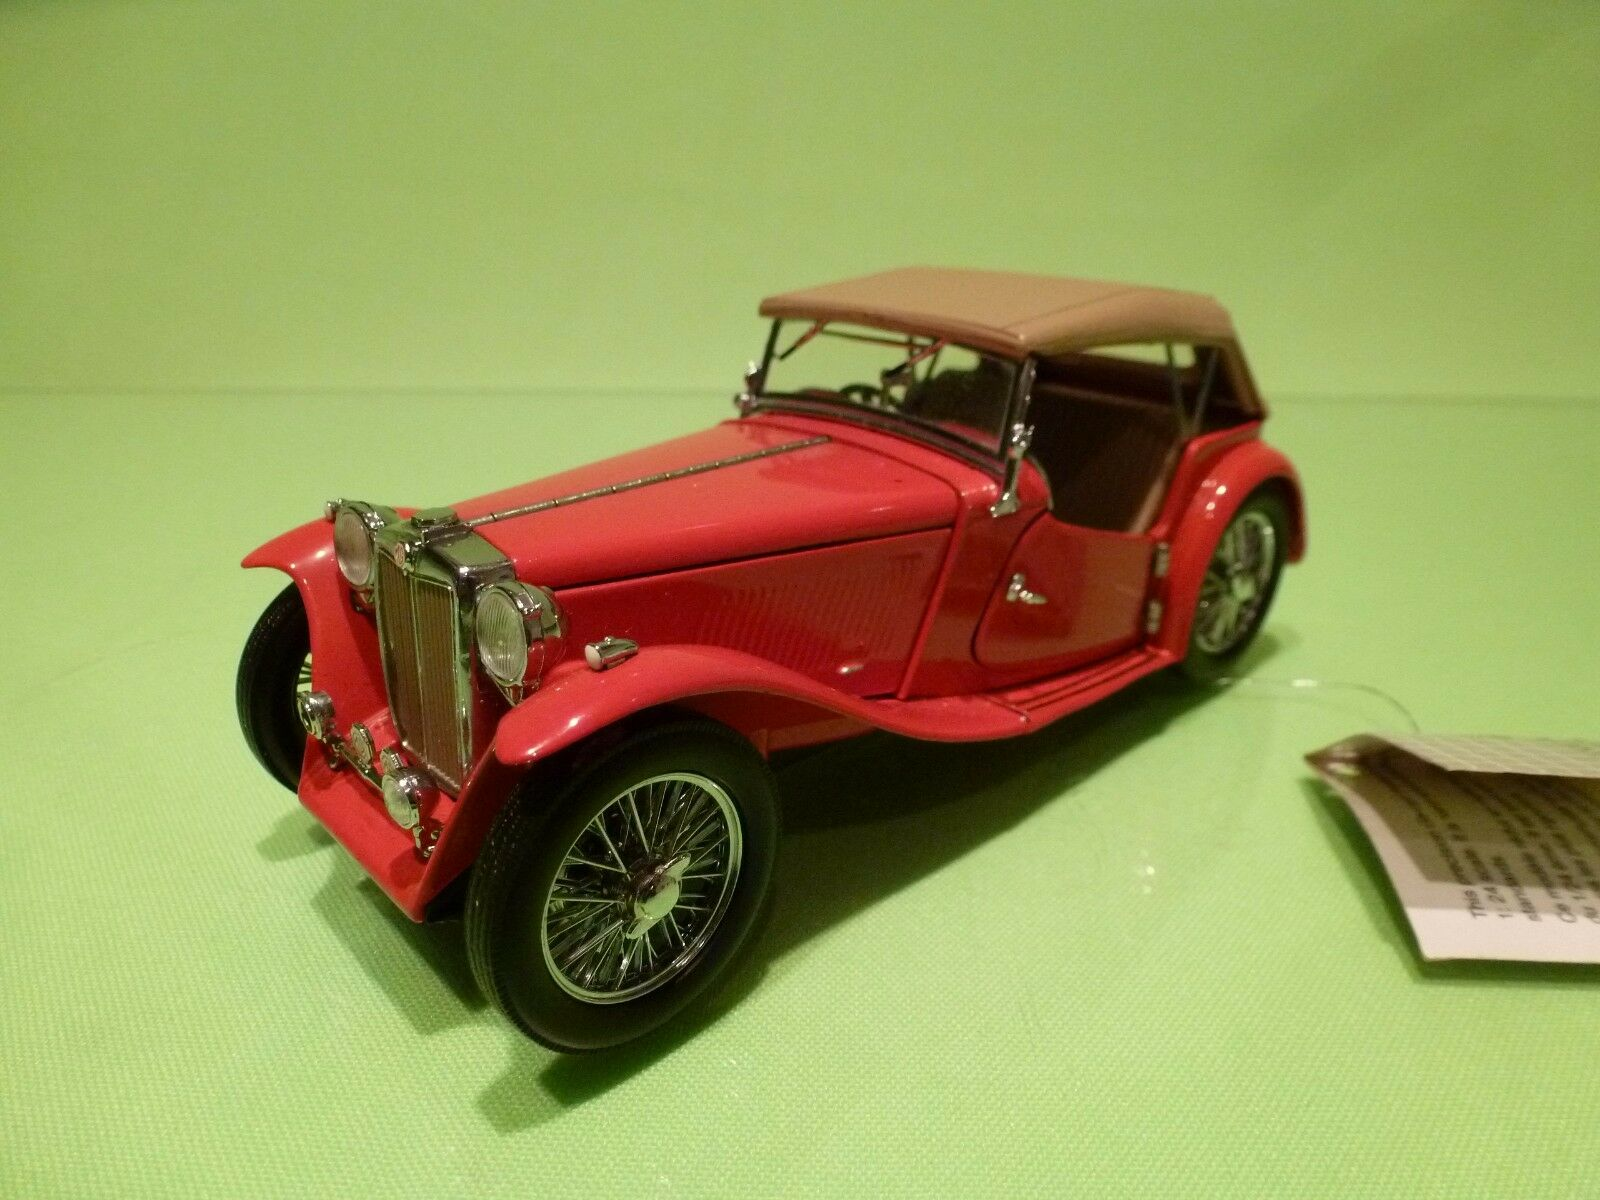 FRANKLIN MINT MG TC ROADSTER 1948 - RED 1:24 - GOOD CONDITION